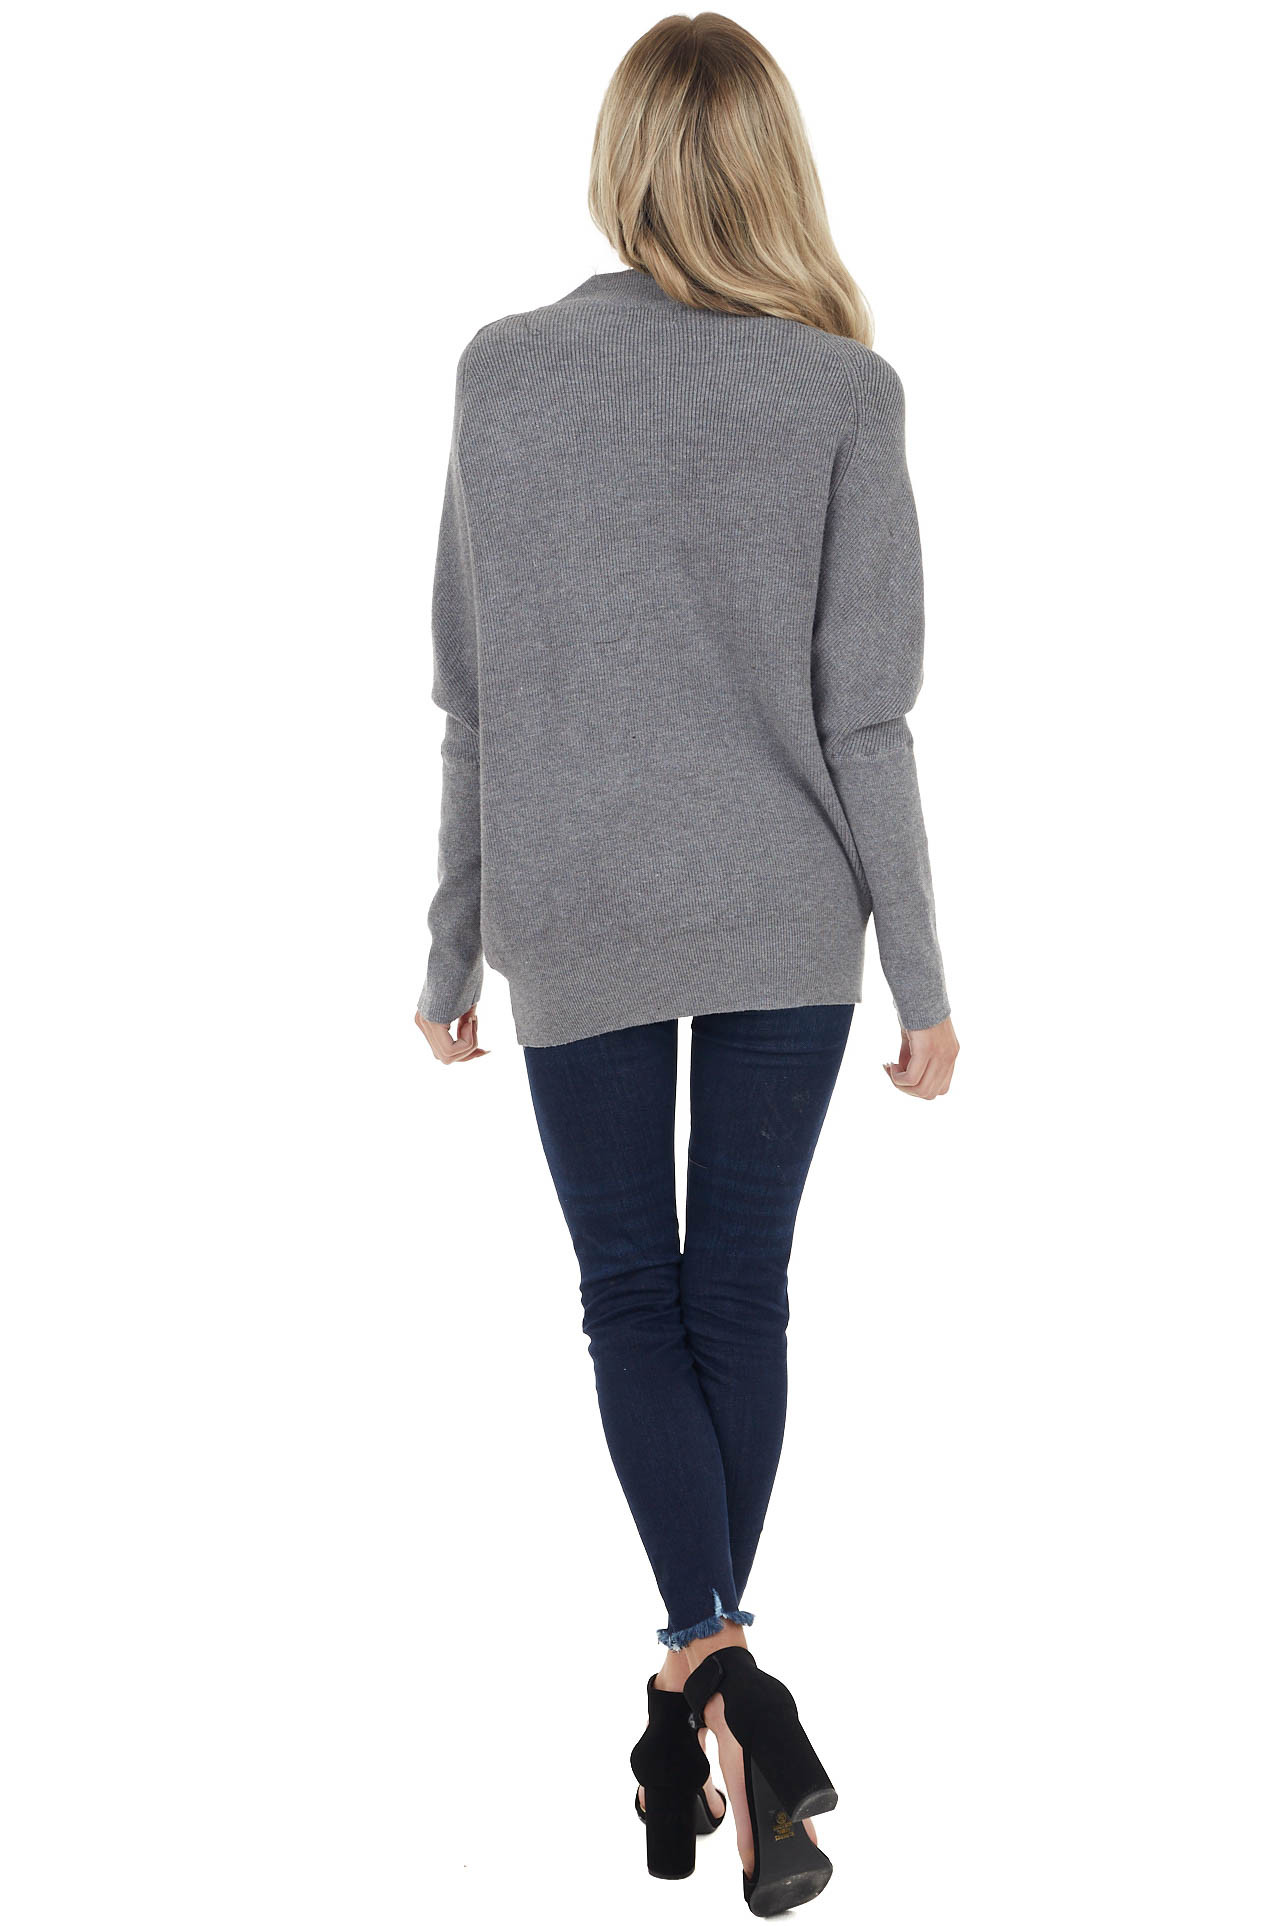 Charcoal High Neck Pullover Sweater with Long Dolman Sleeves